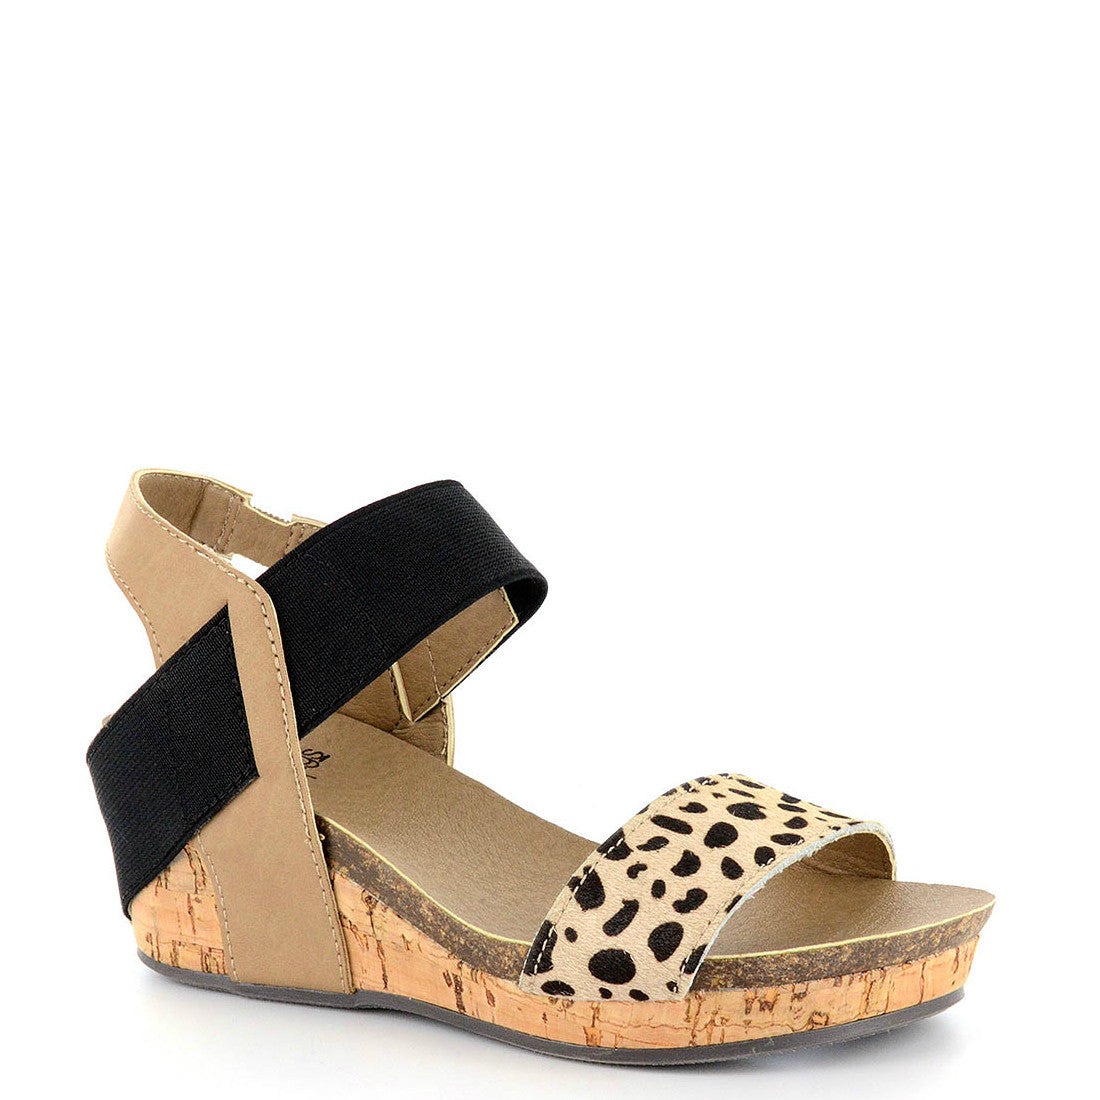 Corkys Girl's Zap Platform Wedge - Cheetah 01-2450 - ShoeShackOnline